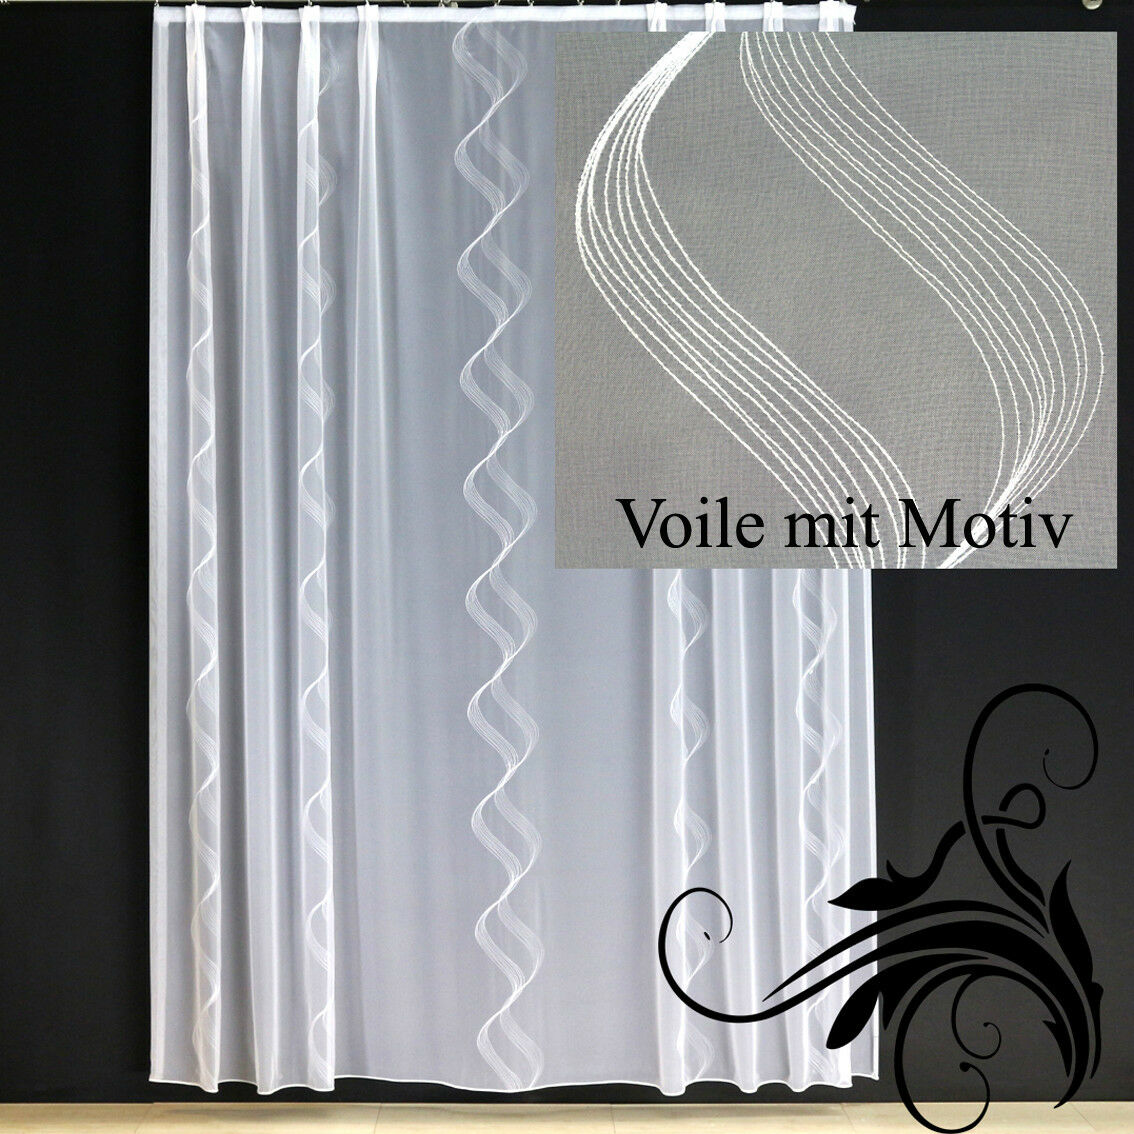 hochwertige fertiggardine voile store mit motiv faltenband bleiband ferrara eur 17 90. Black Bedroom Furniture Sets. Home Design Ideas